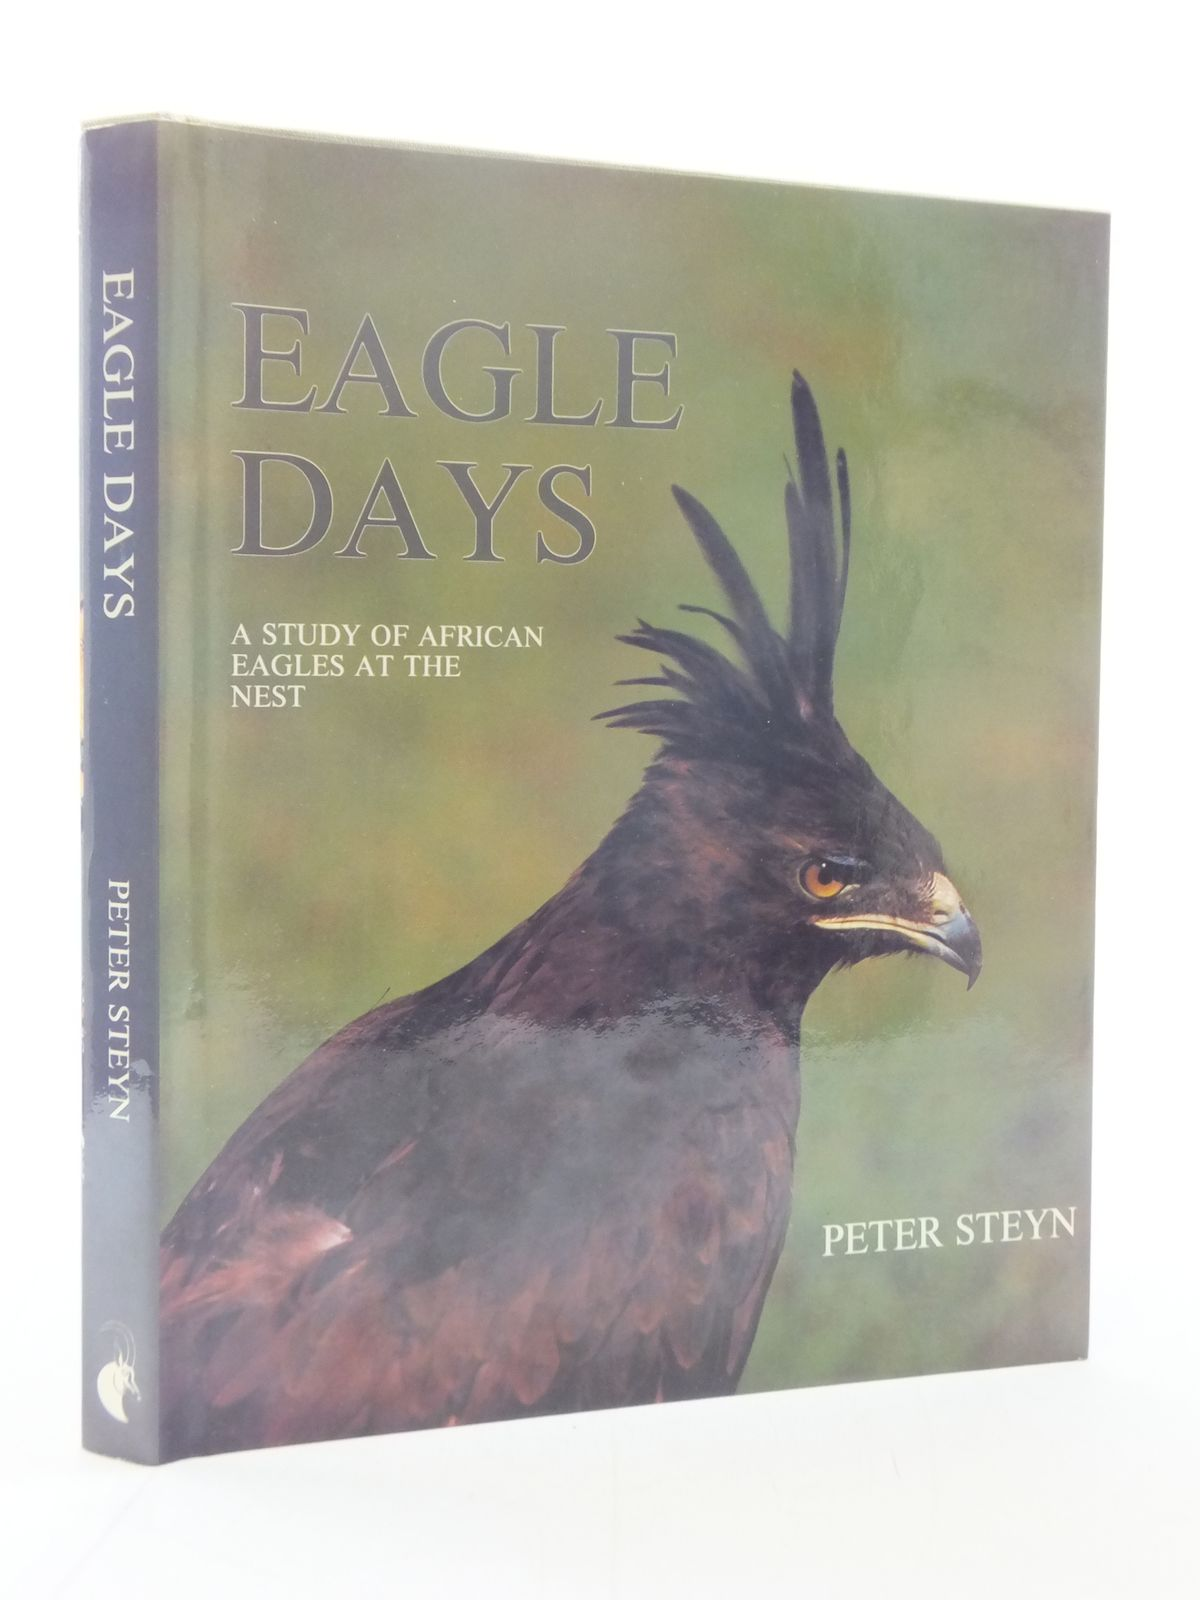 Photo of EAGLE DAYS A STUDY OF AFRICAN EAGLES AT THE NEST written by Steyn, Peter published by Sable Publishers (STOCK CODE: 2114781)  for sale by Stella & Rose's Books